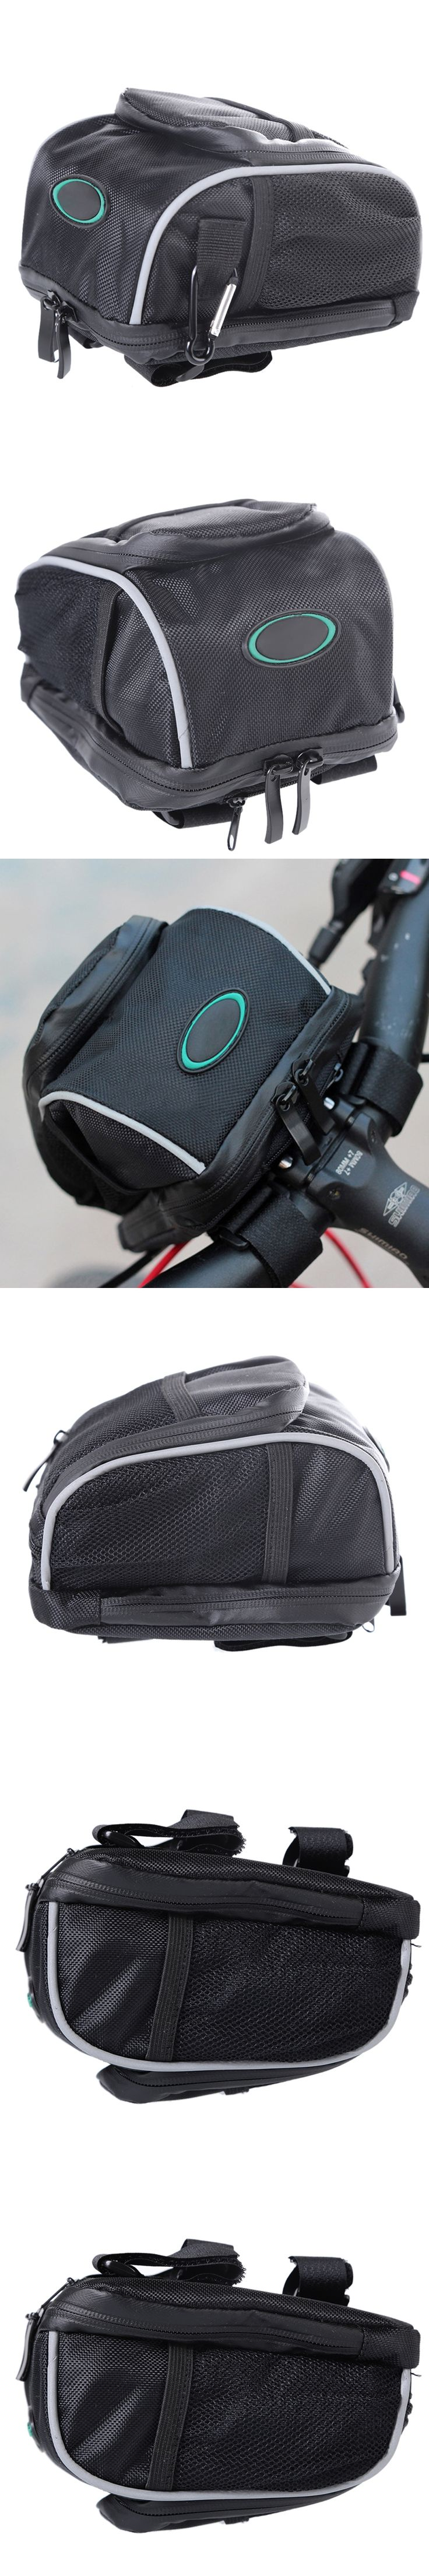 Bicycle Bag Cycling Bike Front Rear Bag MTB Mountain Road Bike Frame Handlebar Bicycle Saddle Bag With Rainproof Cover Carabiner